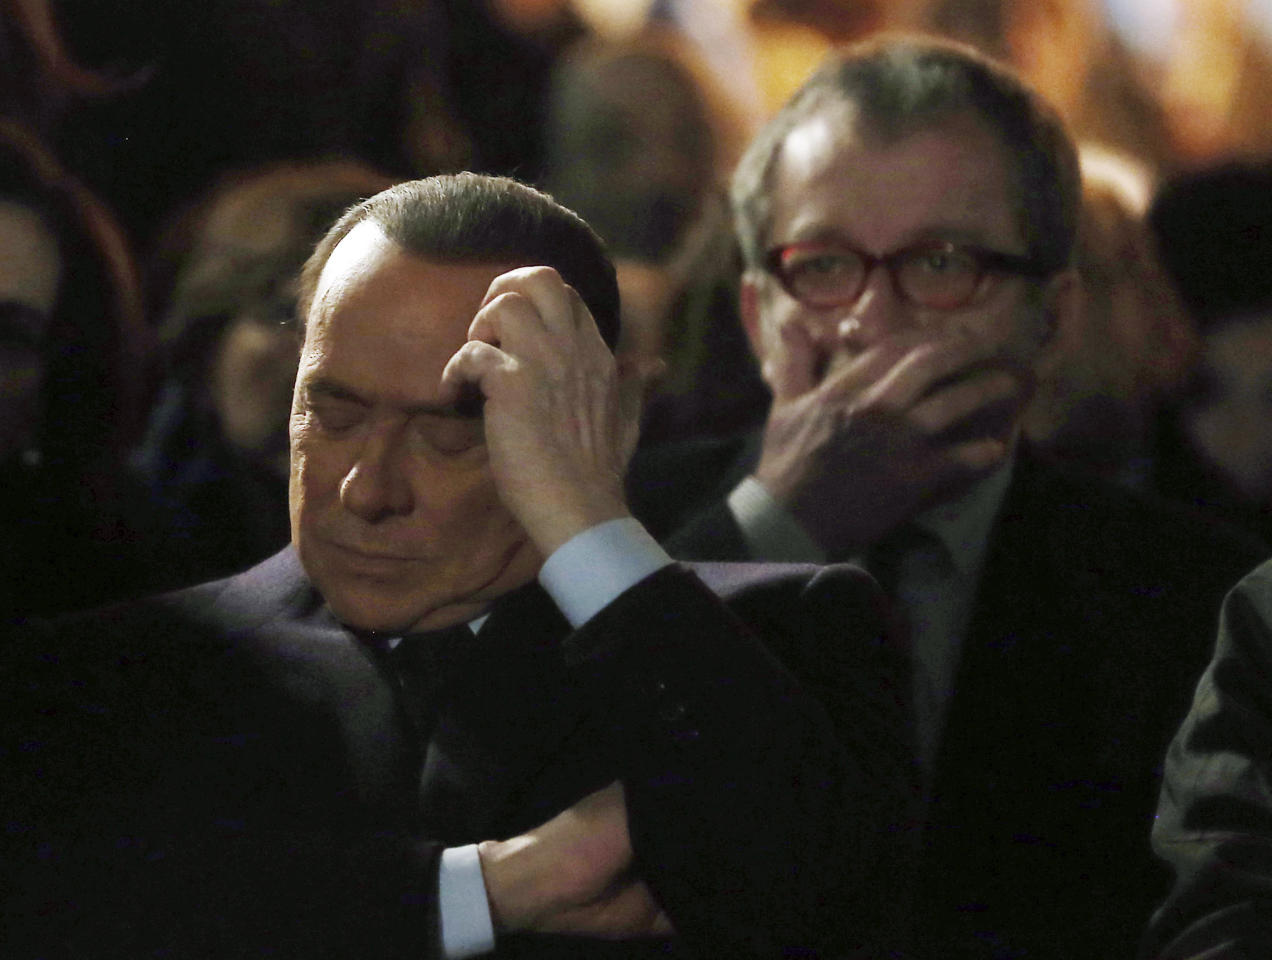 "Former Italian Premier Silvio Berlusconi, foreground, sits in front of Norther League party's leader Roberto Maroni in Milan, Italy, Sunday, Jan. 27, 2013. Silvio Berlusconi says Benito Mussolini did much good, except for dictator's regime's anti-Jewish laws. Berlusconi also defended Mussolini for siding with Hitler, saying the late fascist leader likely reasoned that German power would expand so it would be better for Italy to ally itself with Germany. He was speaking to reporters Sunday on the sidelines of a ceremony in Milan to commemorate the Holocaust. When Germany's Nazi regime occupied Italy during World War II, thousands from the tiny Italian Jewish community were deported to death camps. In 1938, before the war's outbreak, Mussolini's regime passed anti-Jewish laws, barring them from universities and many professions, among other bans. Berlusconi called the laws Mussolini's ""worst fault"" but insisted that in many other things, ""he did good."" (AP Photo/Antonio Calanni)"